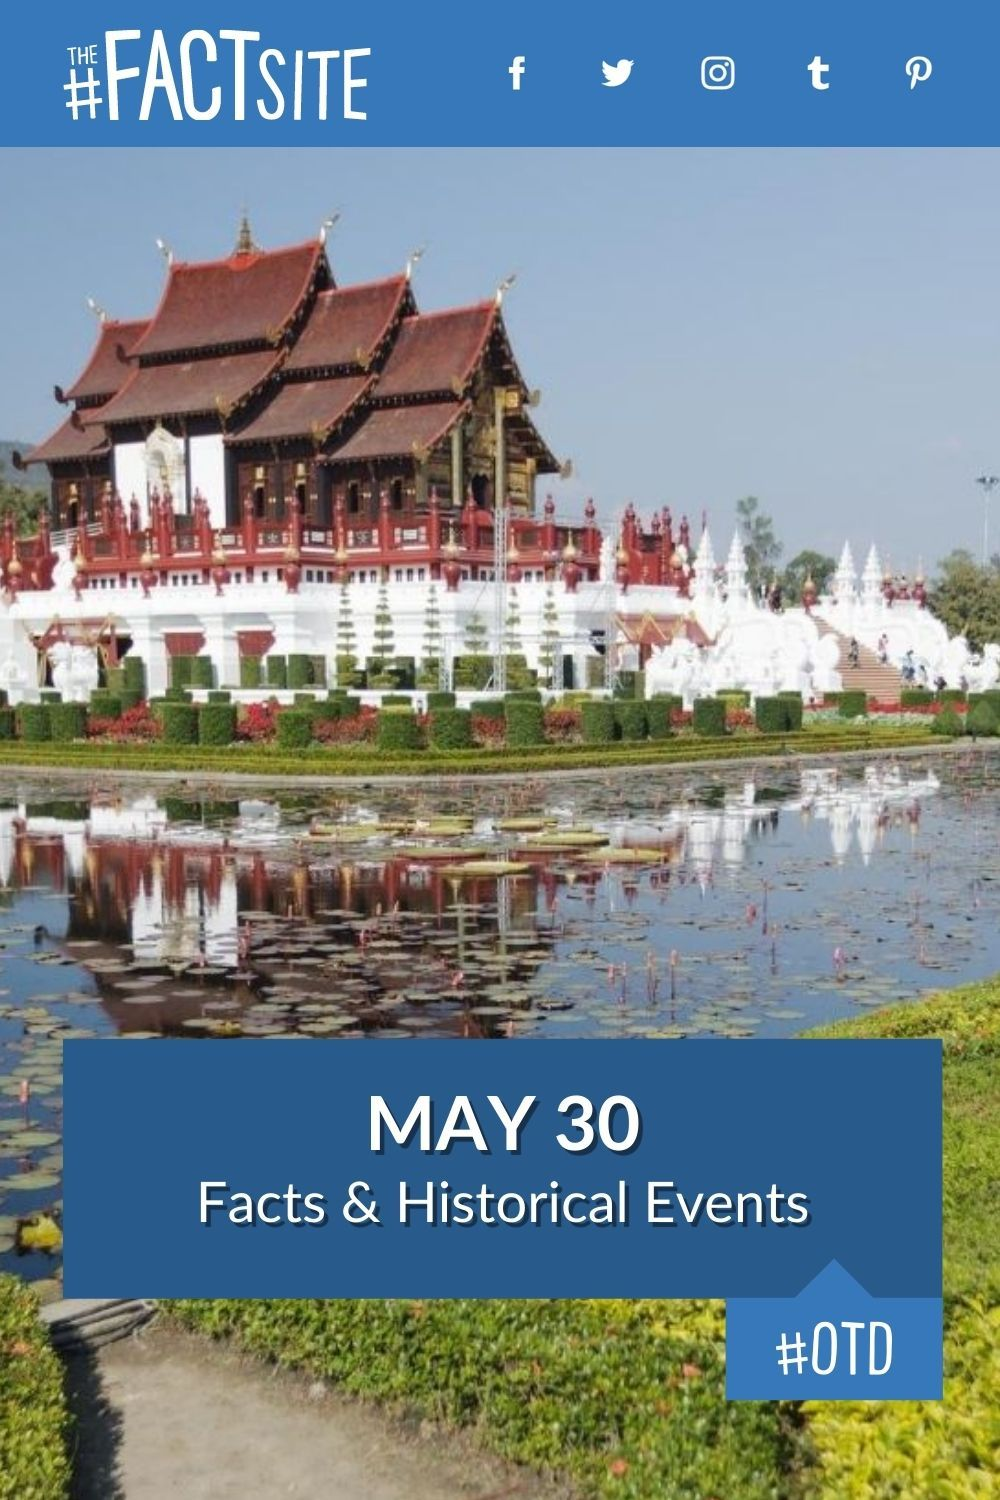 Facts & Historic Events That Happened on May 30